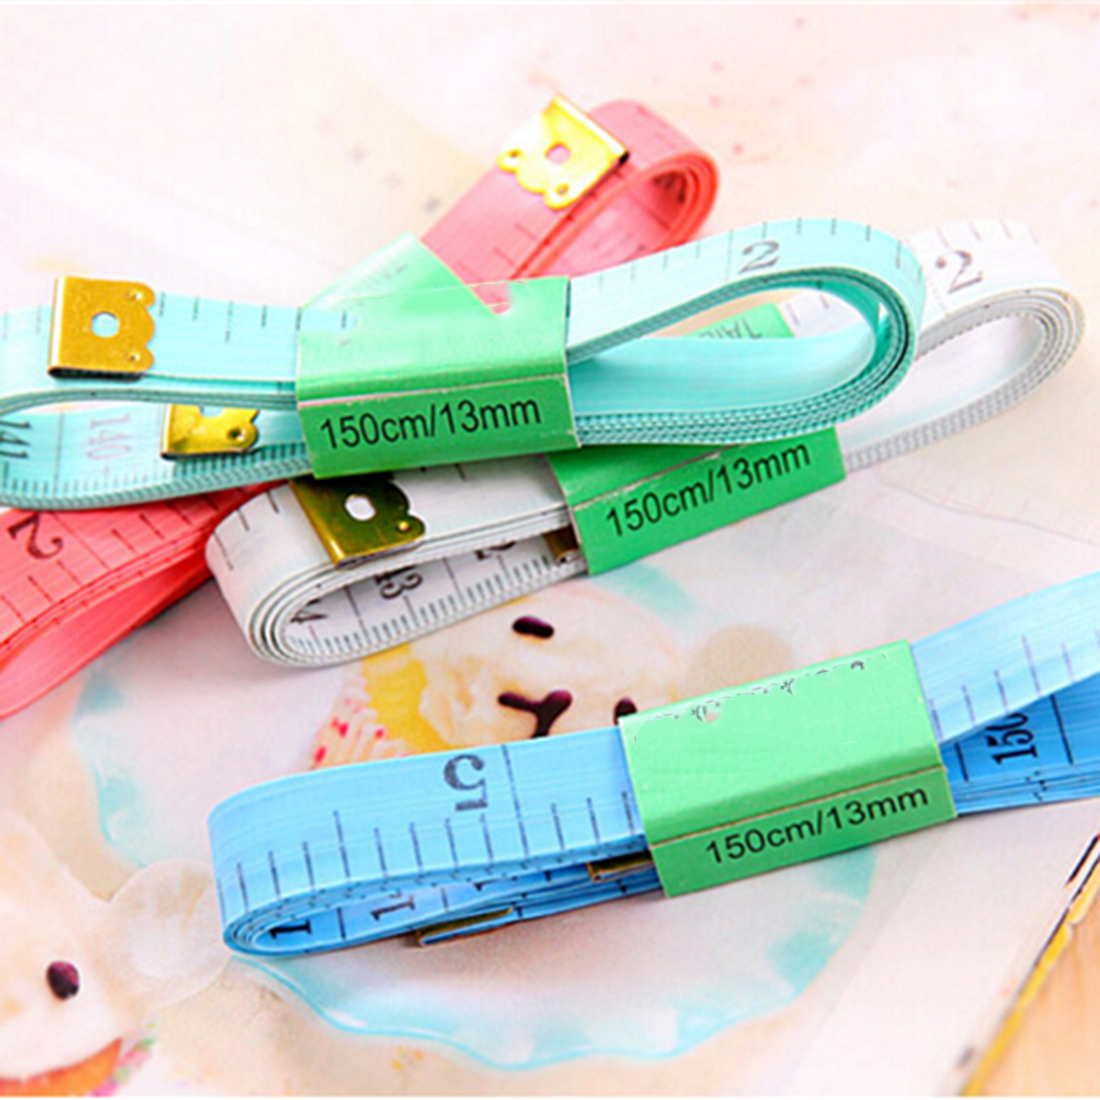 Hot Sell Body Measuring Ruler Sewing Tailor Tape Measure Soft 60 Inch 1.5M Sewing Ruler Meter Sewing Measuring Tape Random Color